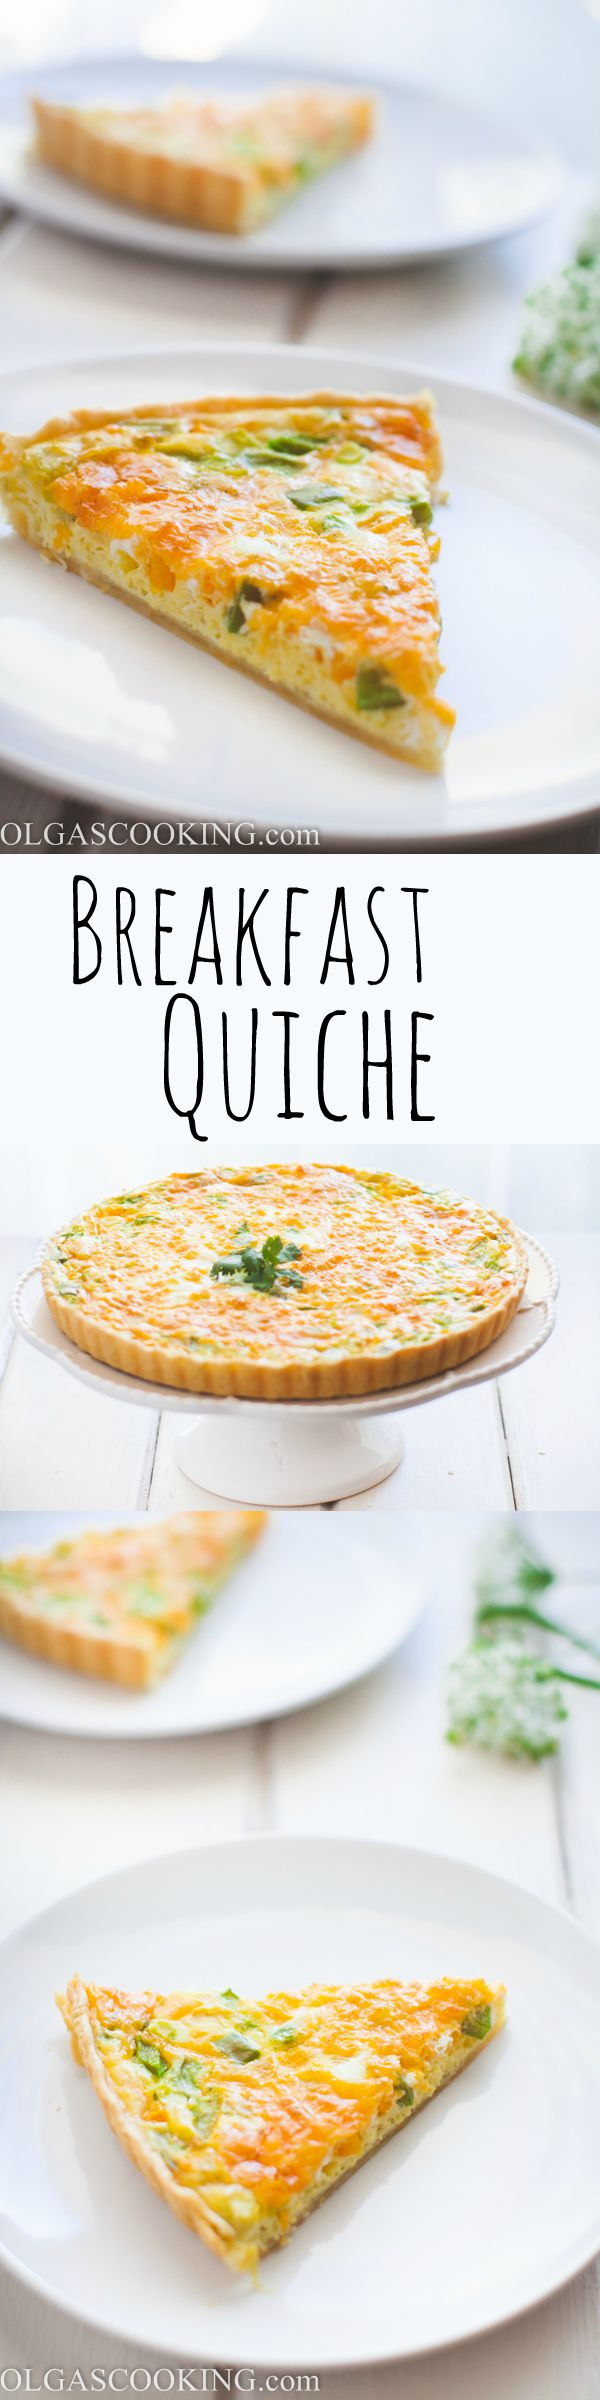 Super duper easy breakfast quiche recipe